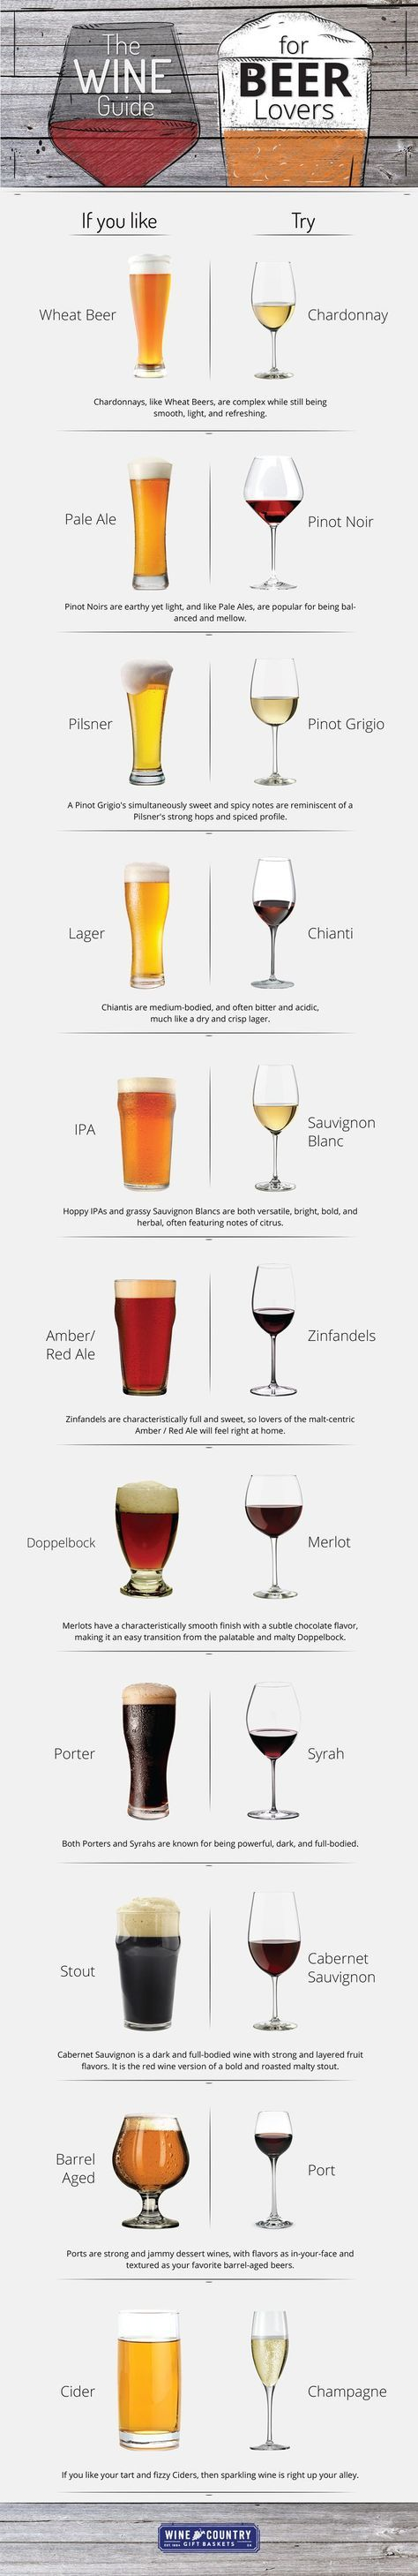 Score! How to persuade your beer lover to join you for a glass of wine. {wineglasswriter.com/}